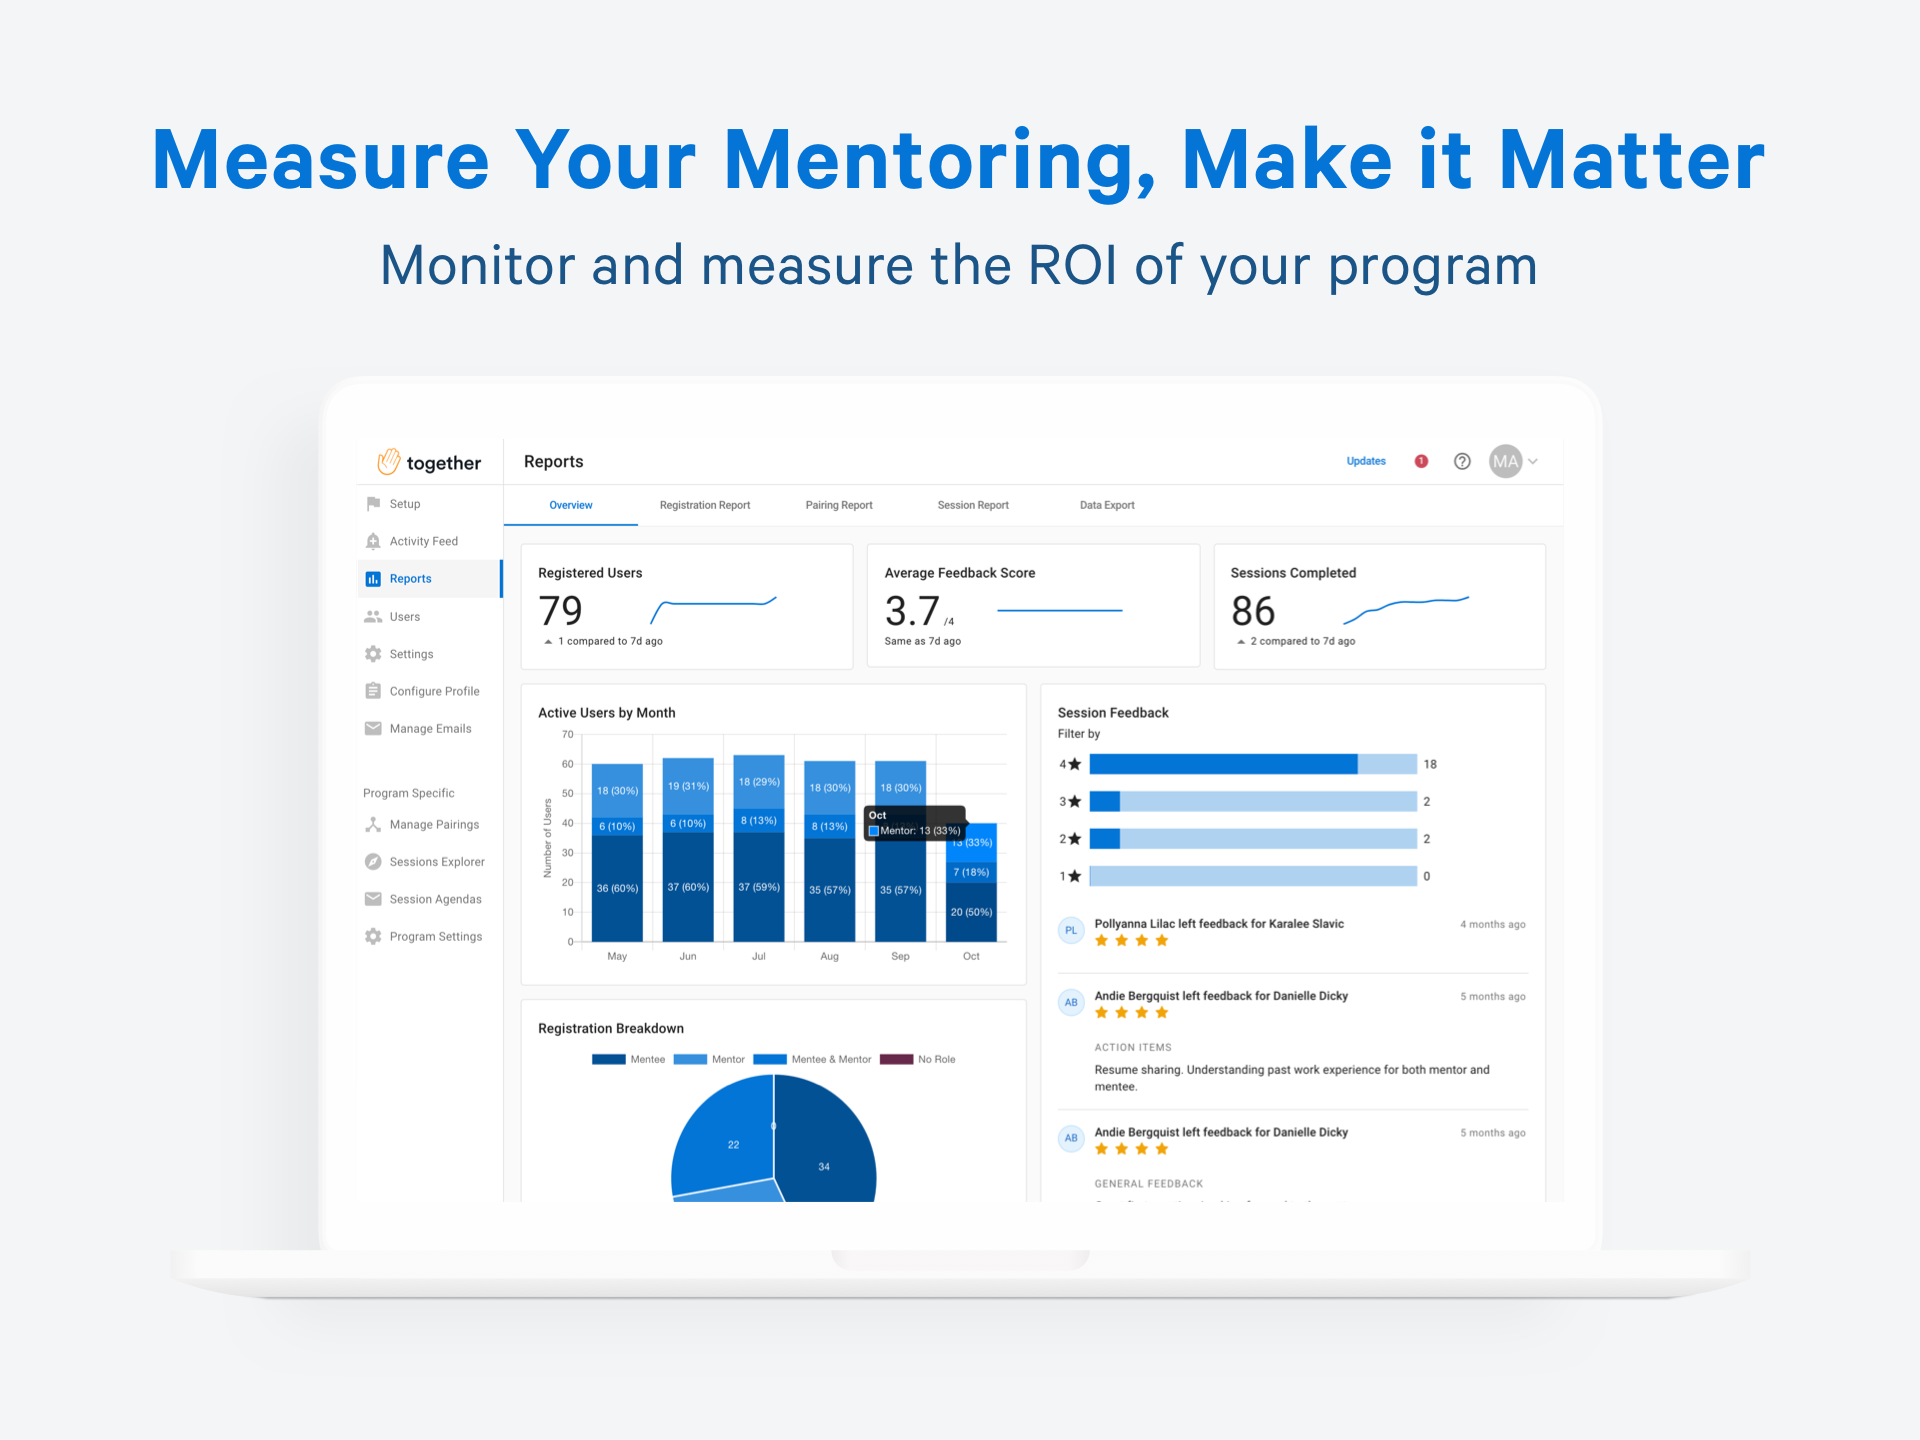 Get program insights with built-in reporting. Measure program activity, health, and engagement and see real progress towards skill development and goals.